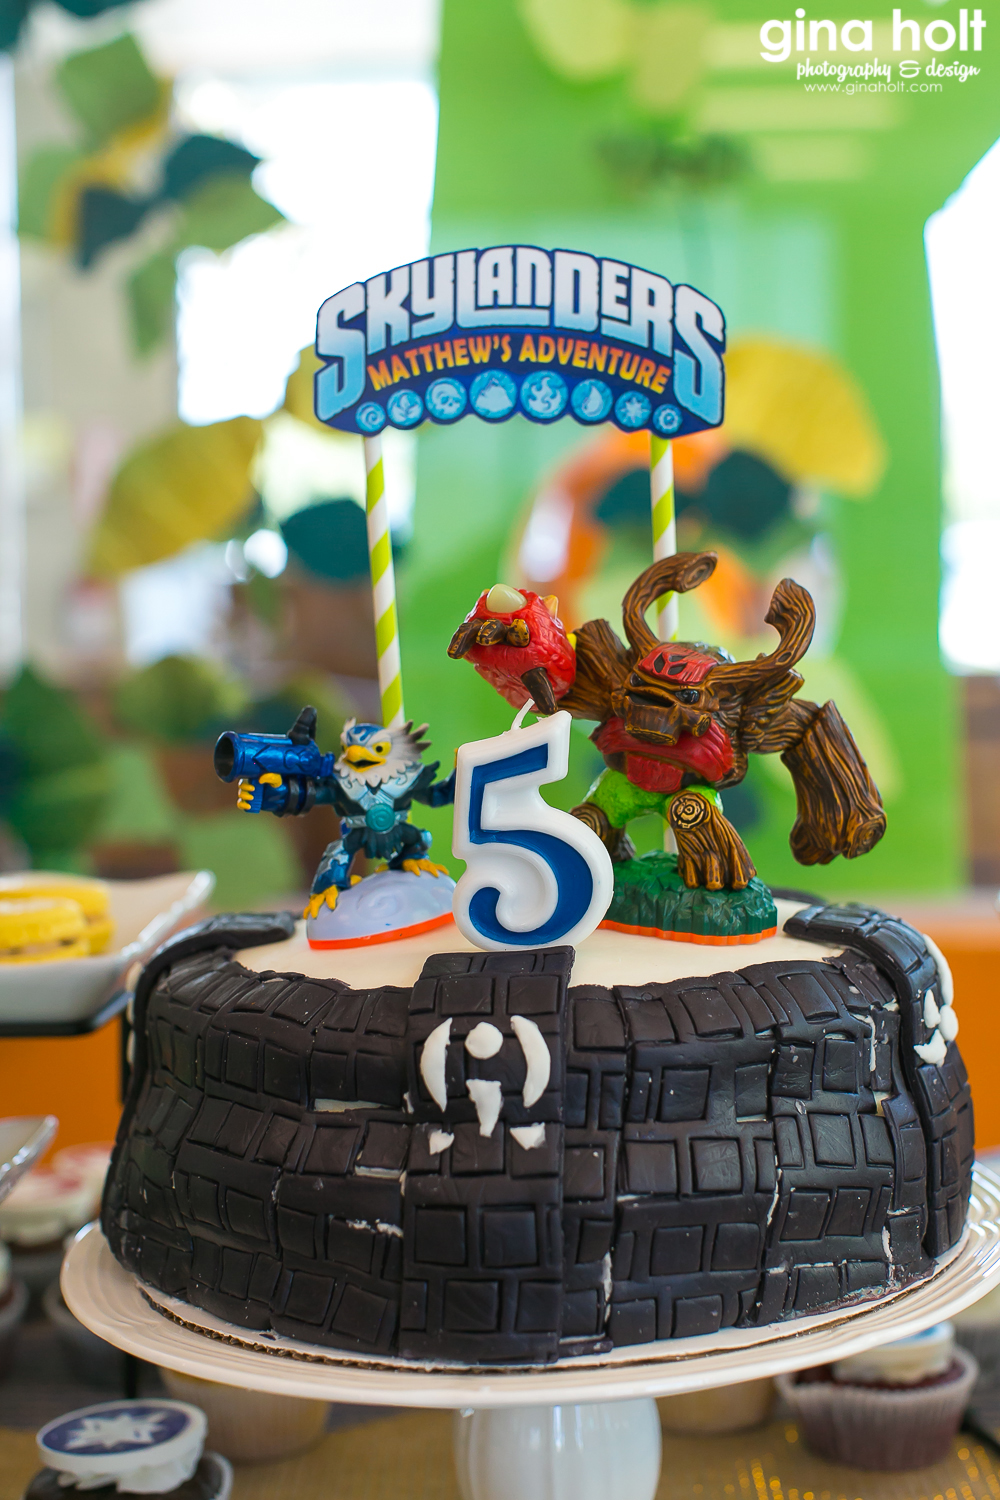 Irvine Family Photographer, Skylander Birthday Party Theme, Matthew's 5th Birthday Celebration, Playland Cafe, Orange County Birthday Party Event Photographer, Milkstashe Macarons,